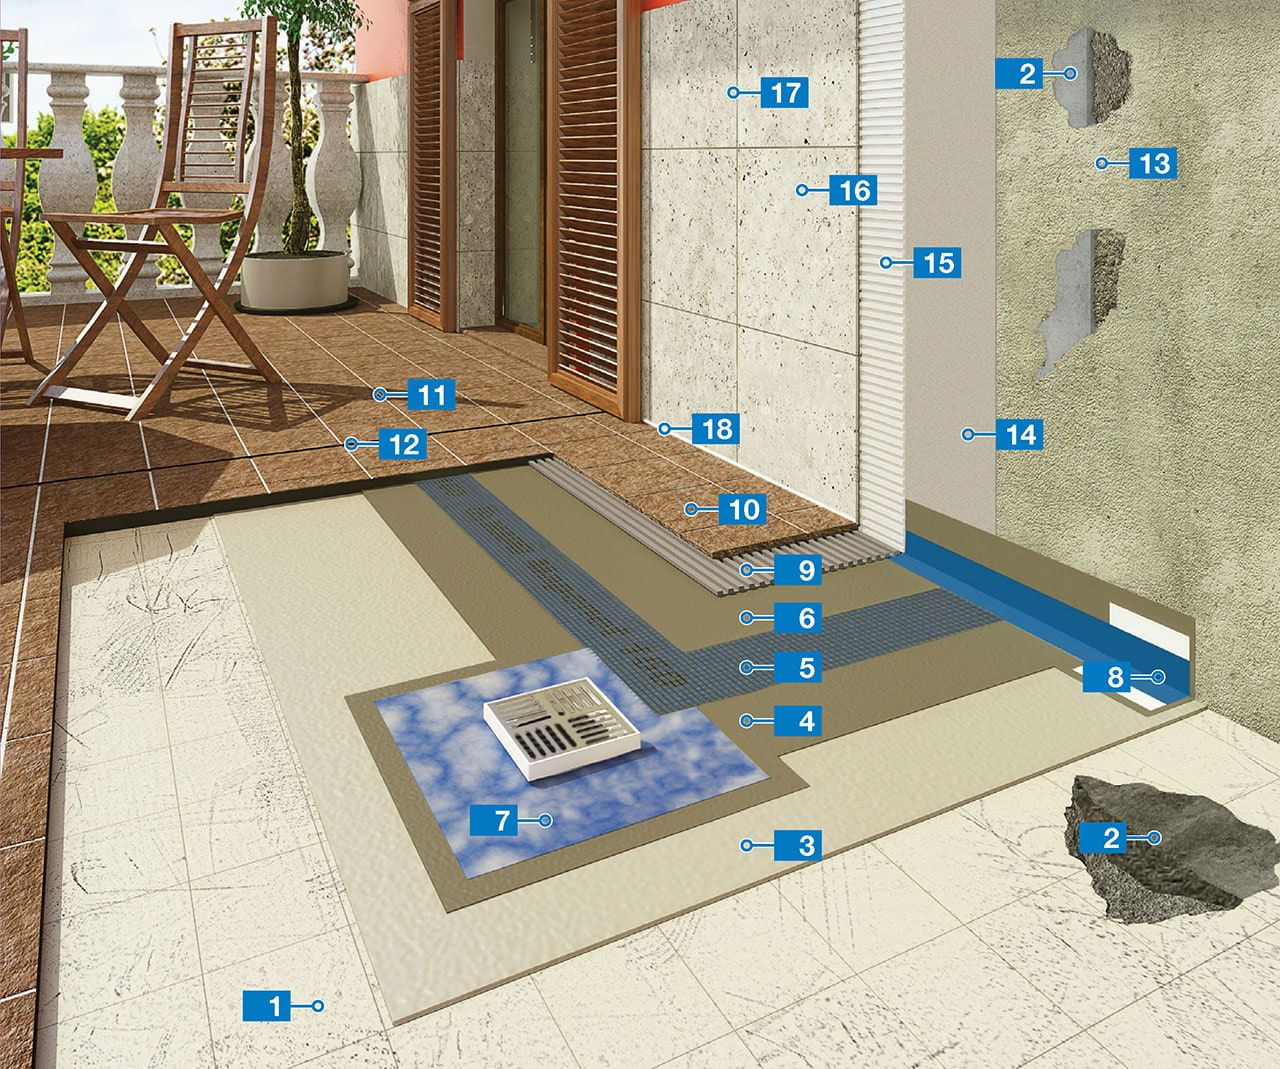 System for waterproofing and installing ceramic tiles on terraces system for waterproofing and installing ceramic tiles on terraces and flat roofs on existing floor and installing natural stone on faades dailygadgetfo Gallery